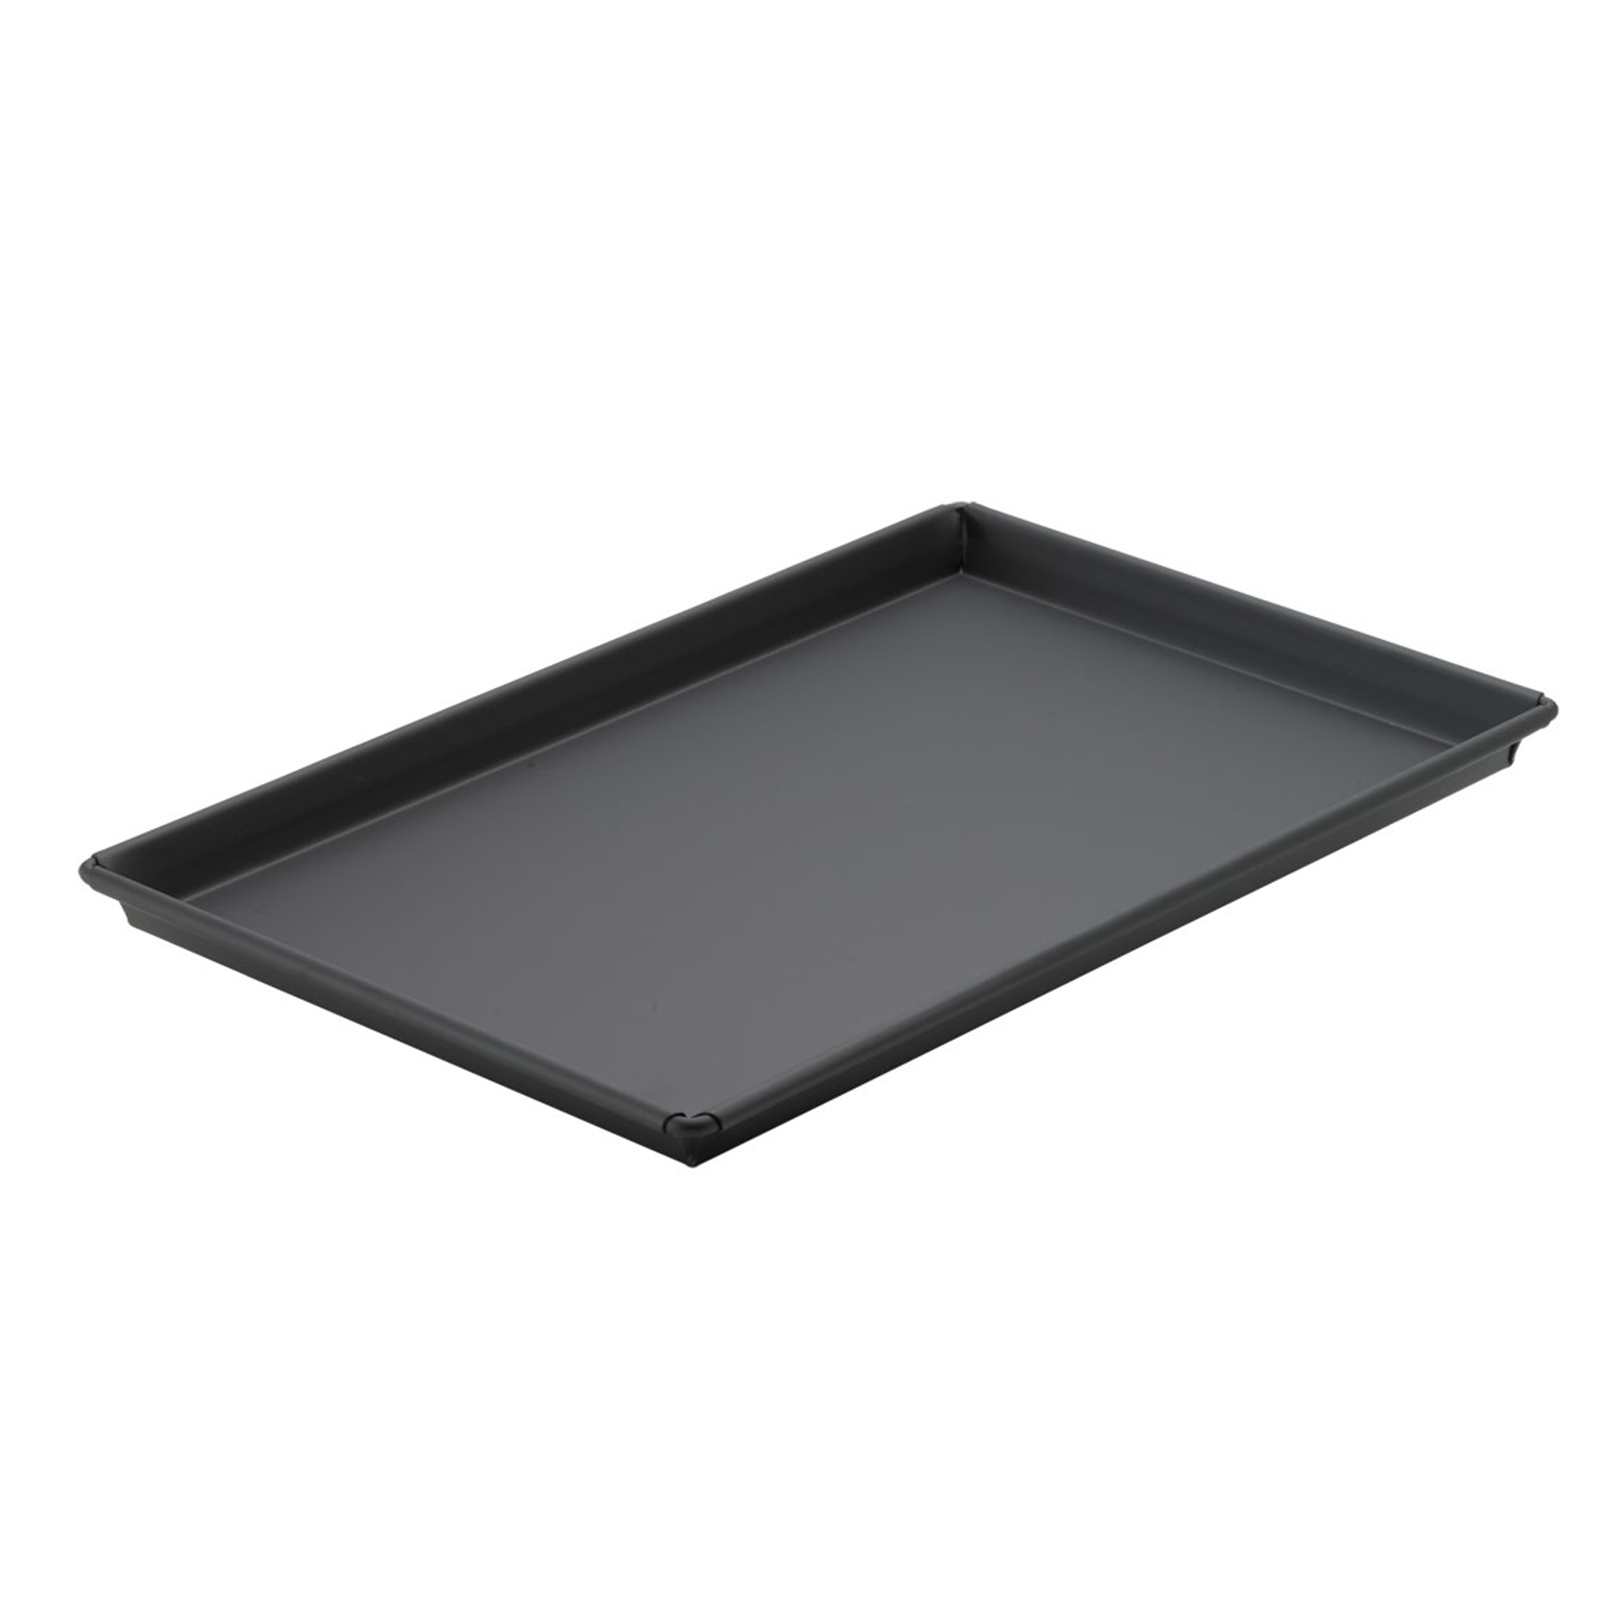 Winco SPP-1218 pizza pan